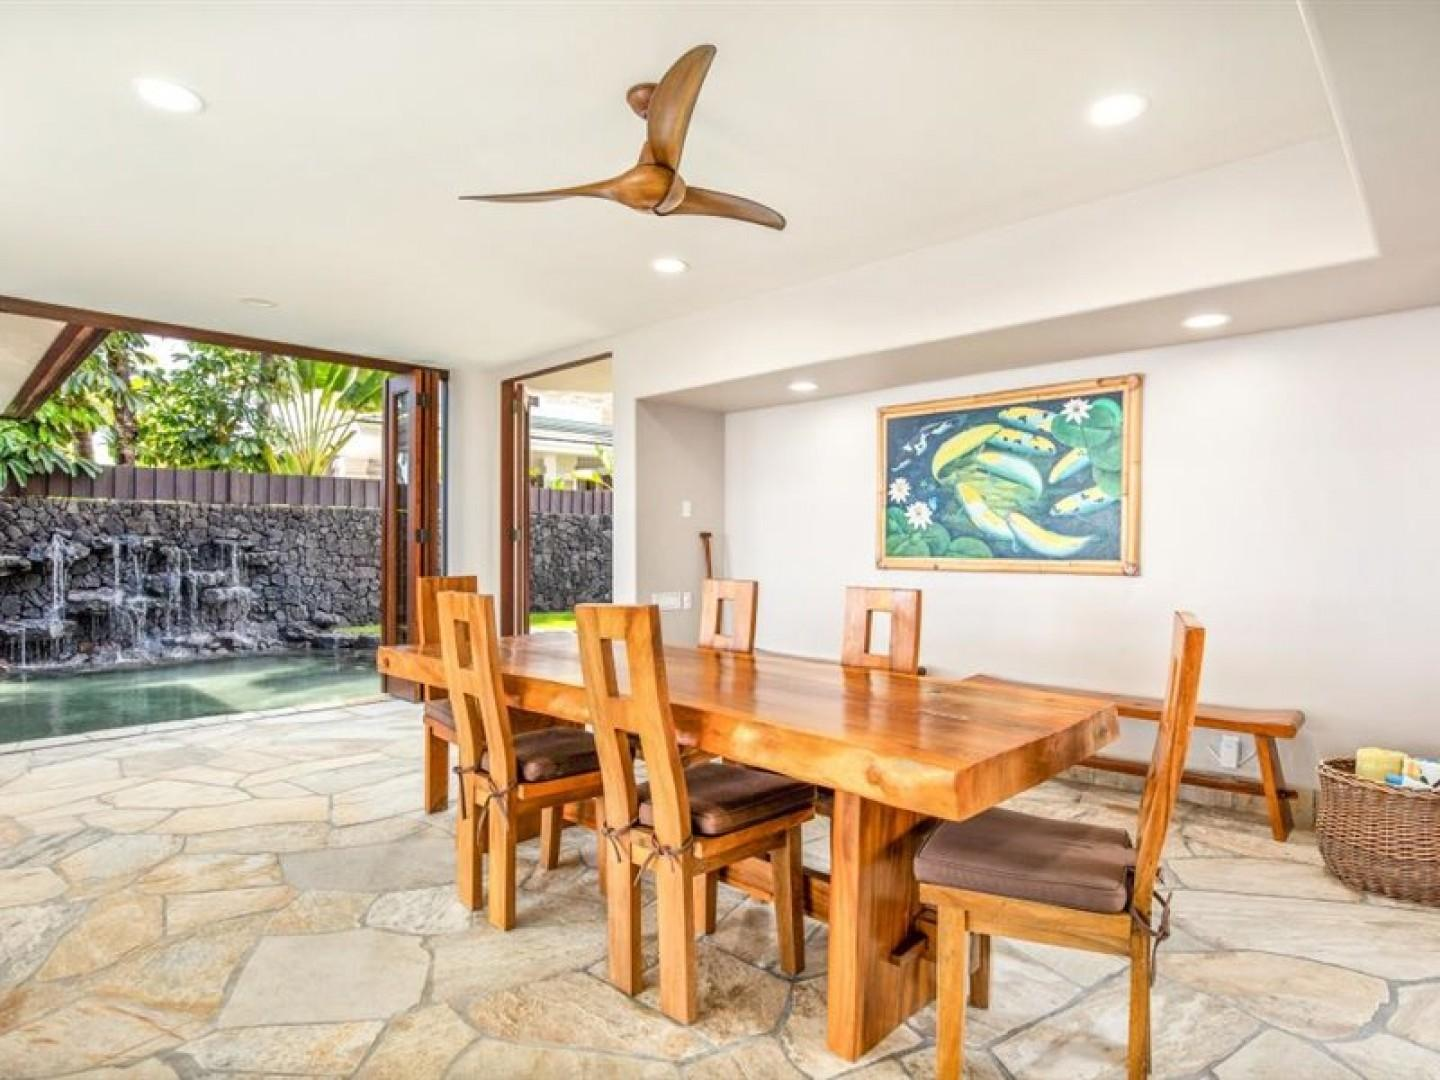 Indoor dining near the kitchen